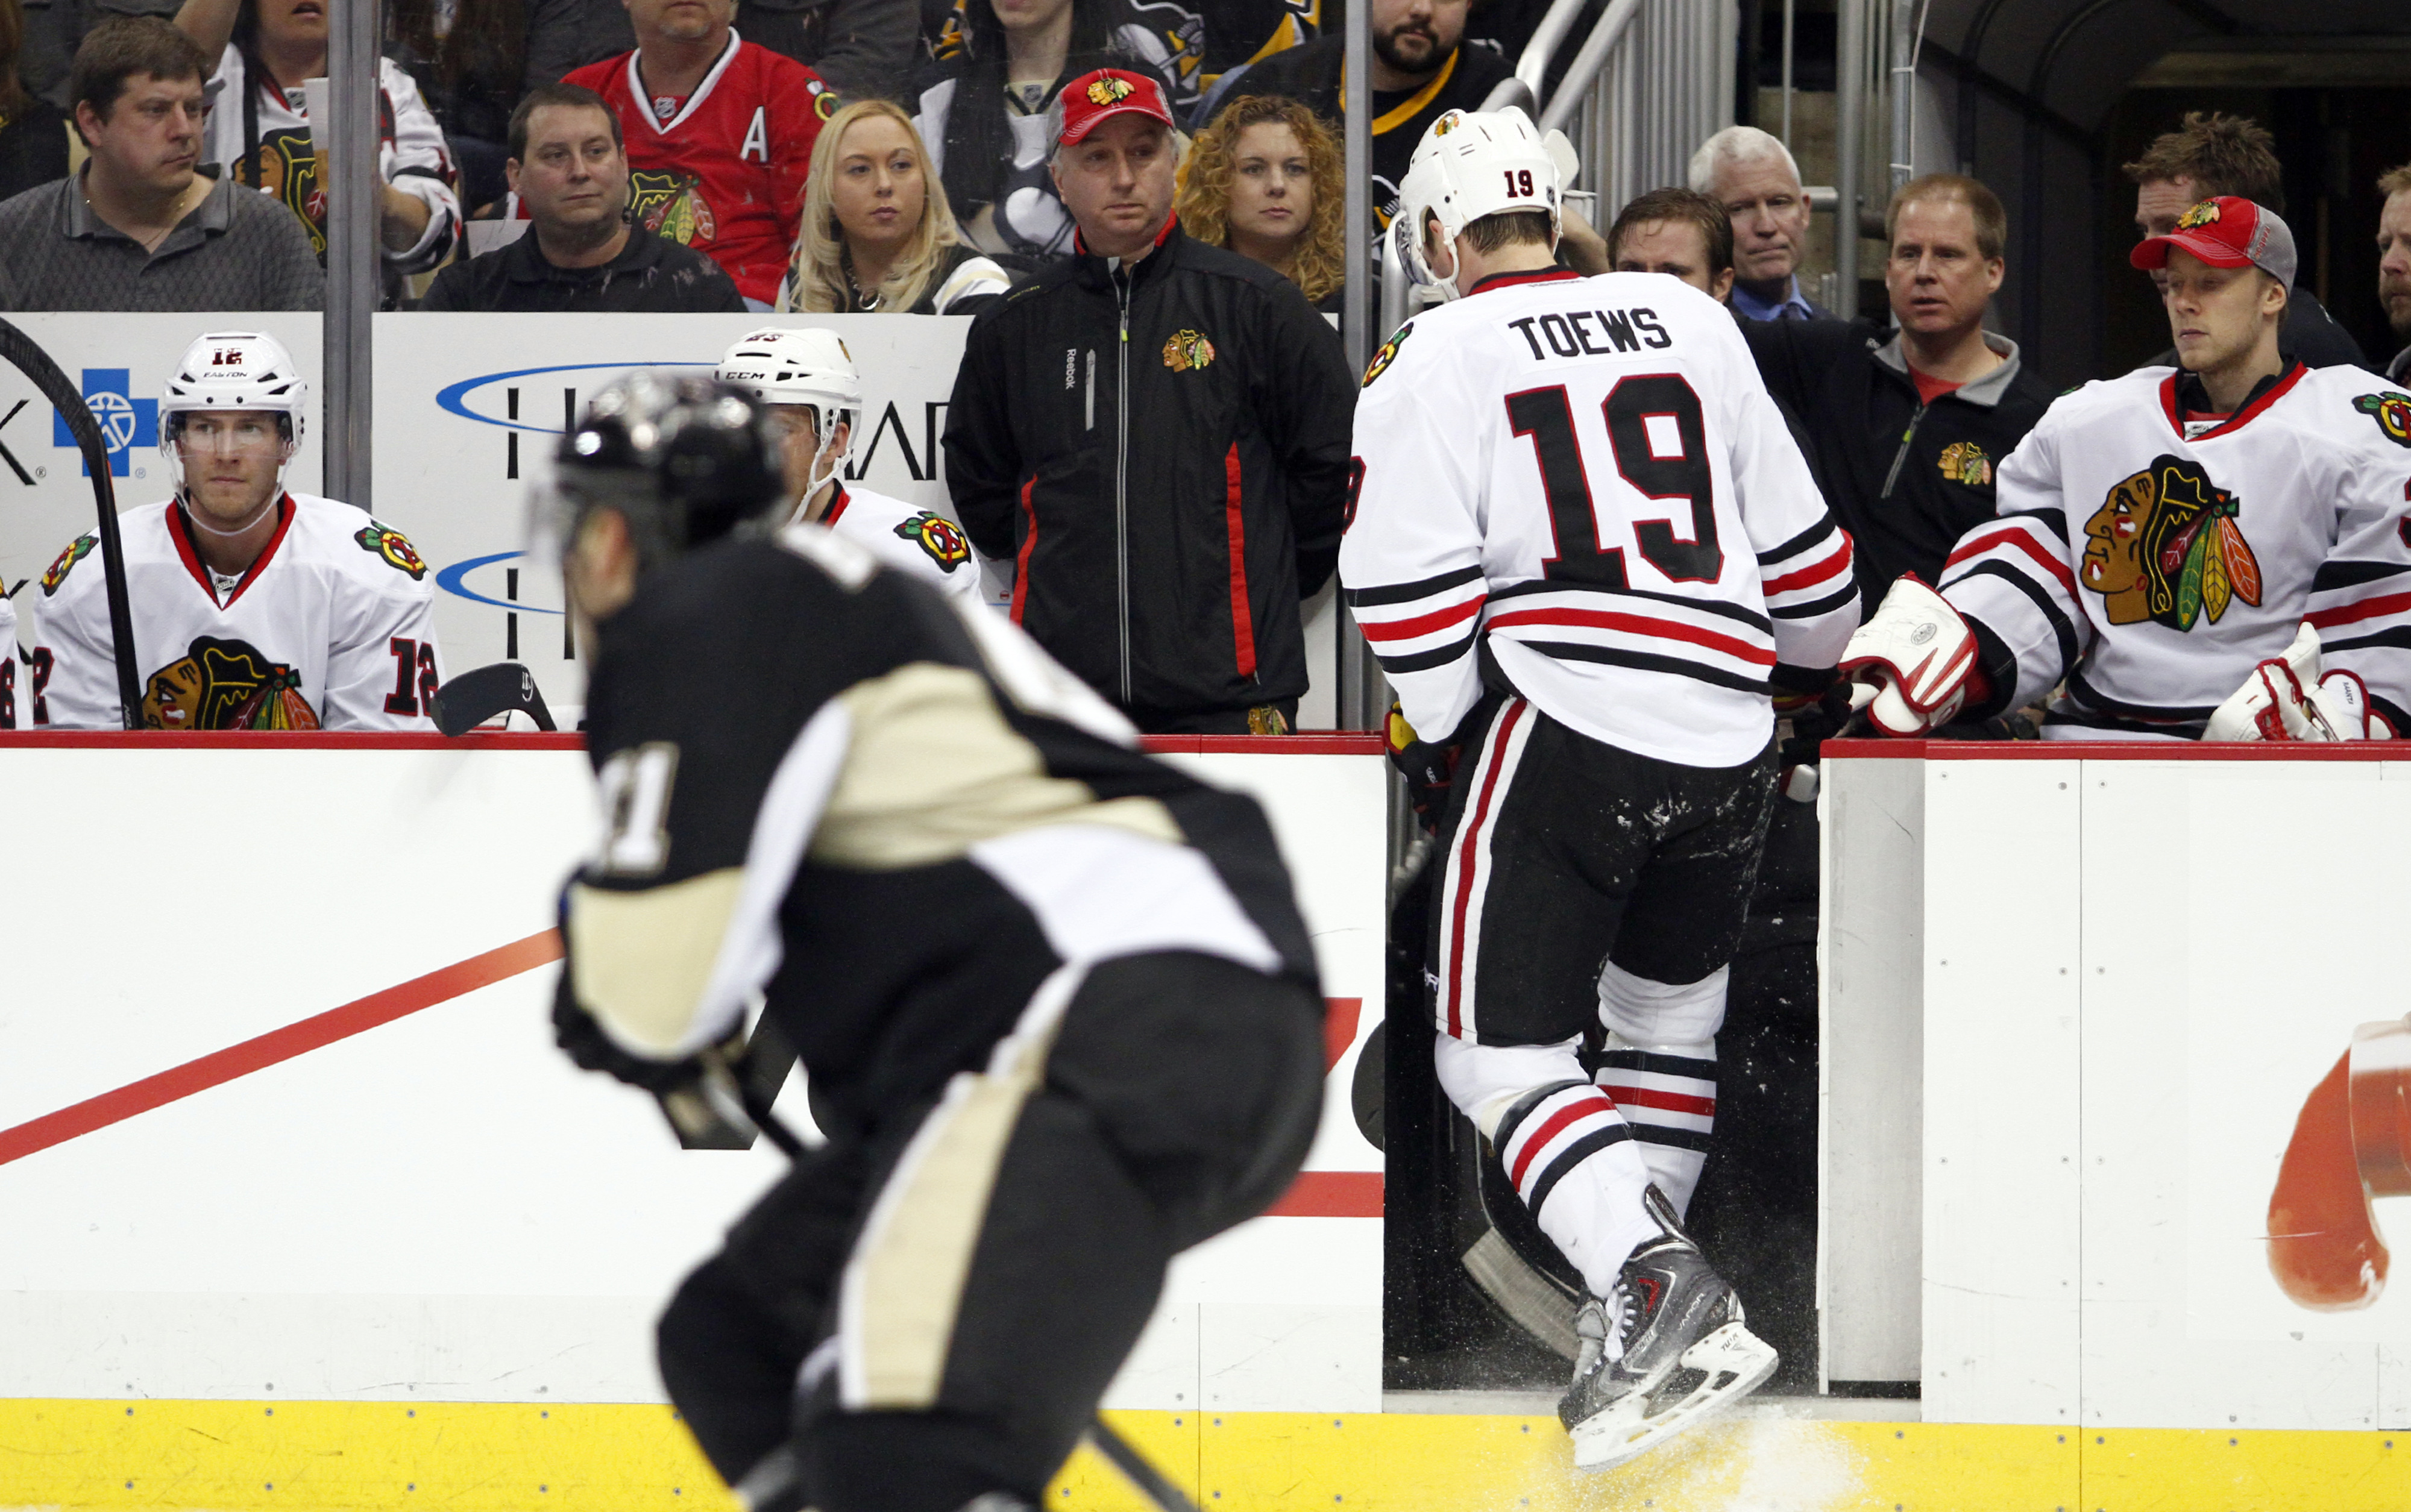 Toews leaves the game after injuring his arm from a Brooks Orpik check.